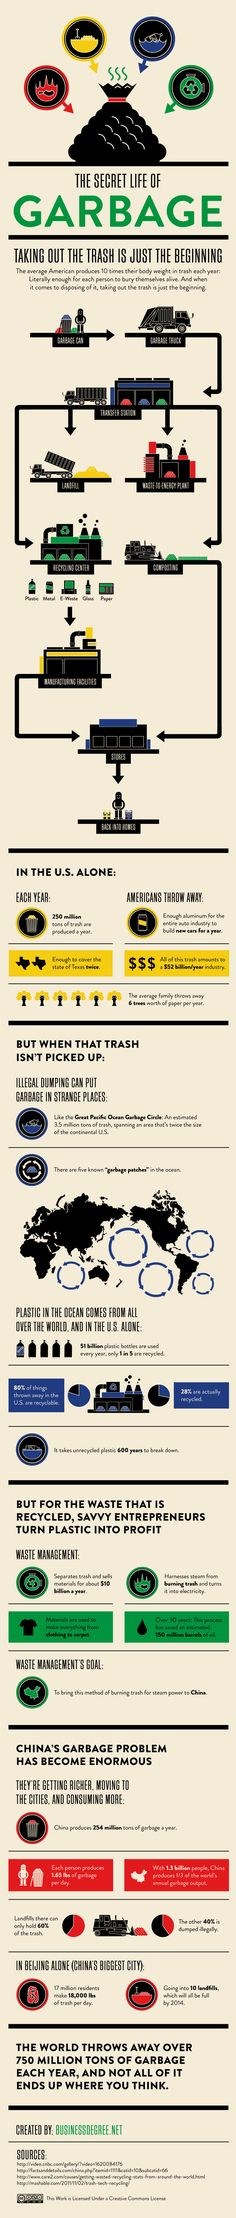 The secret life of garbage: The world throws away more than 750 million tons of garbage each year, and not all of it ends up where you think.